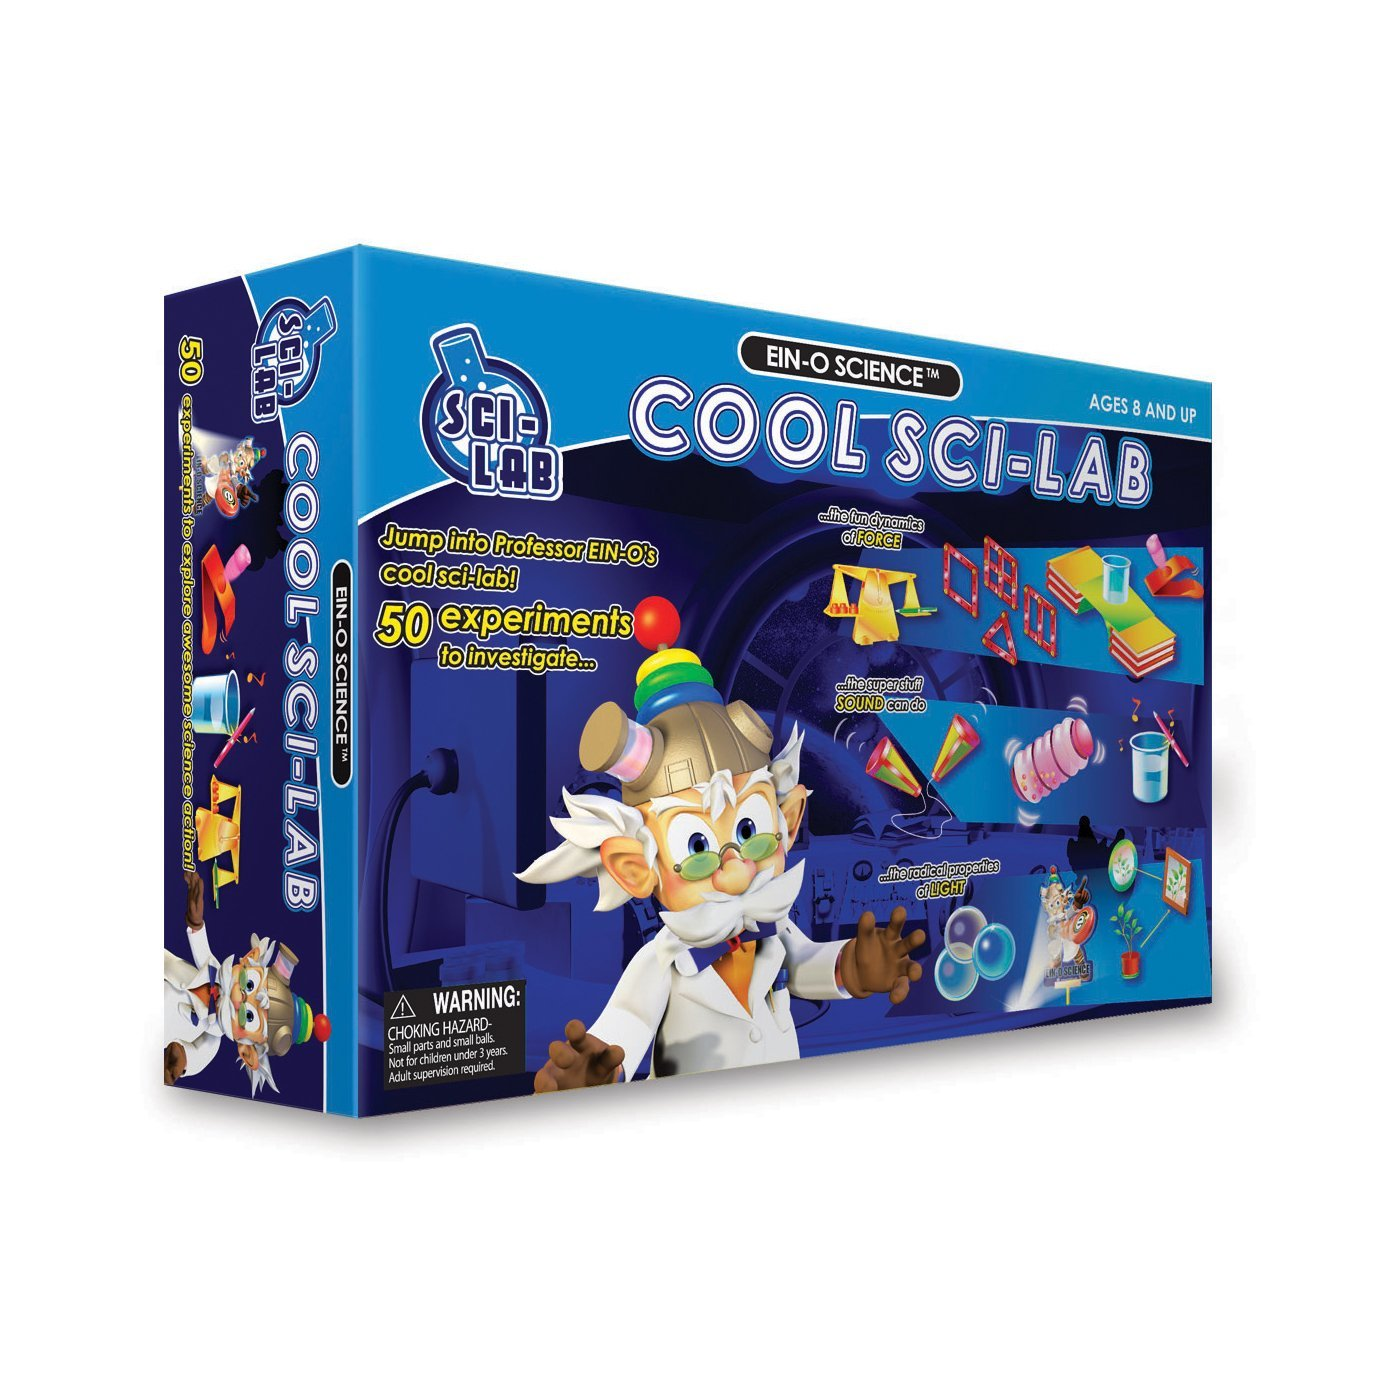 Ein-O Science Sci-Lab Cool Science Lab Stem Experiment Kit